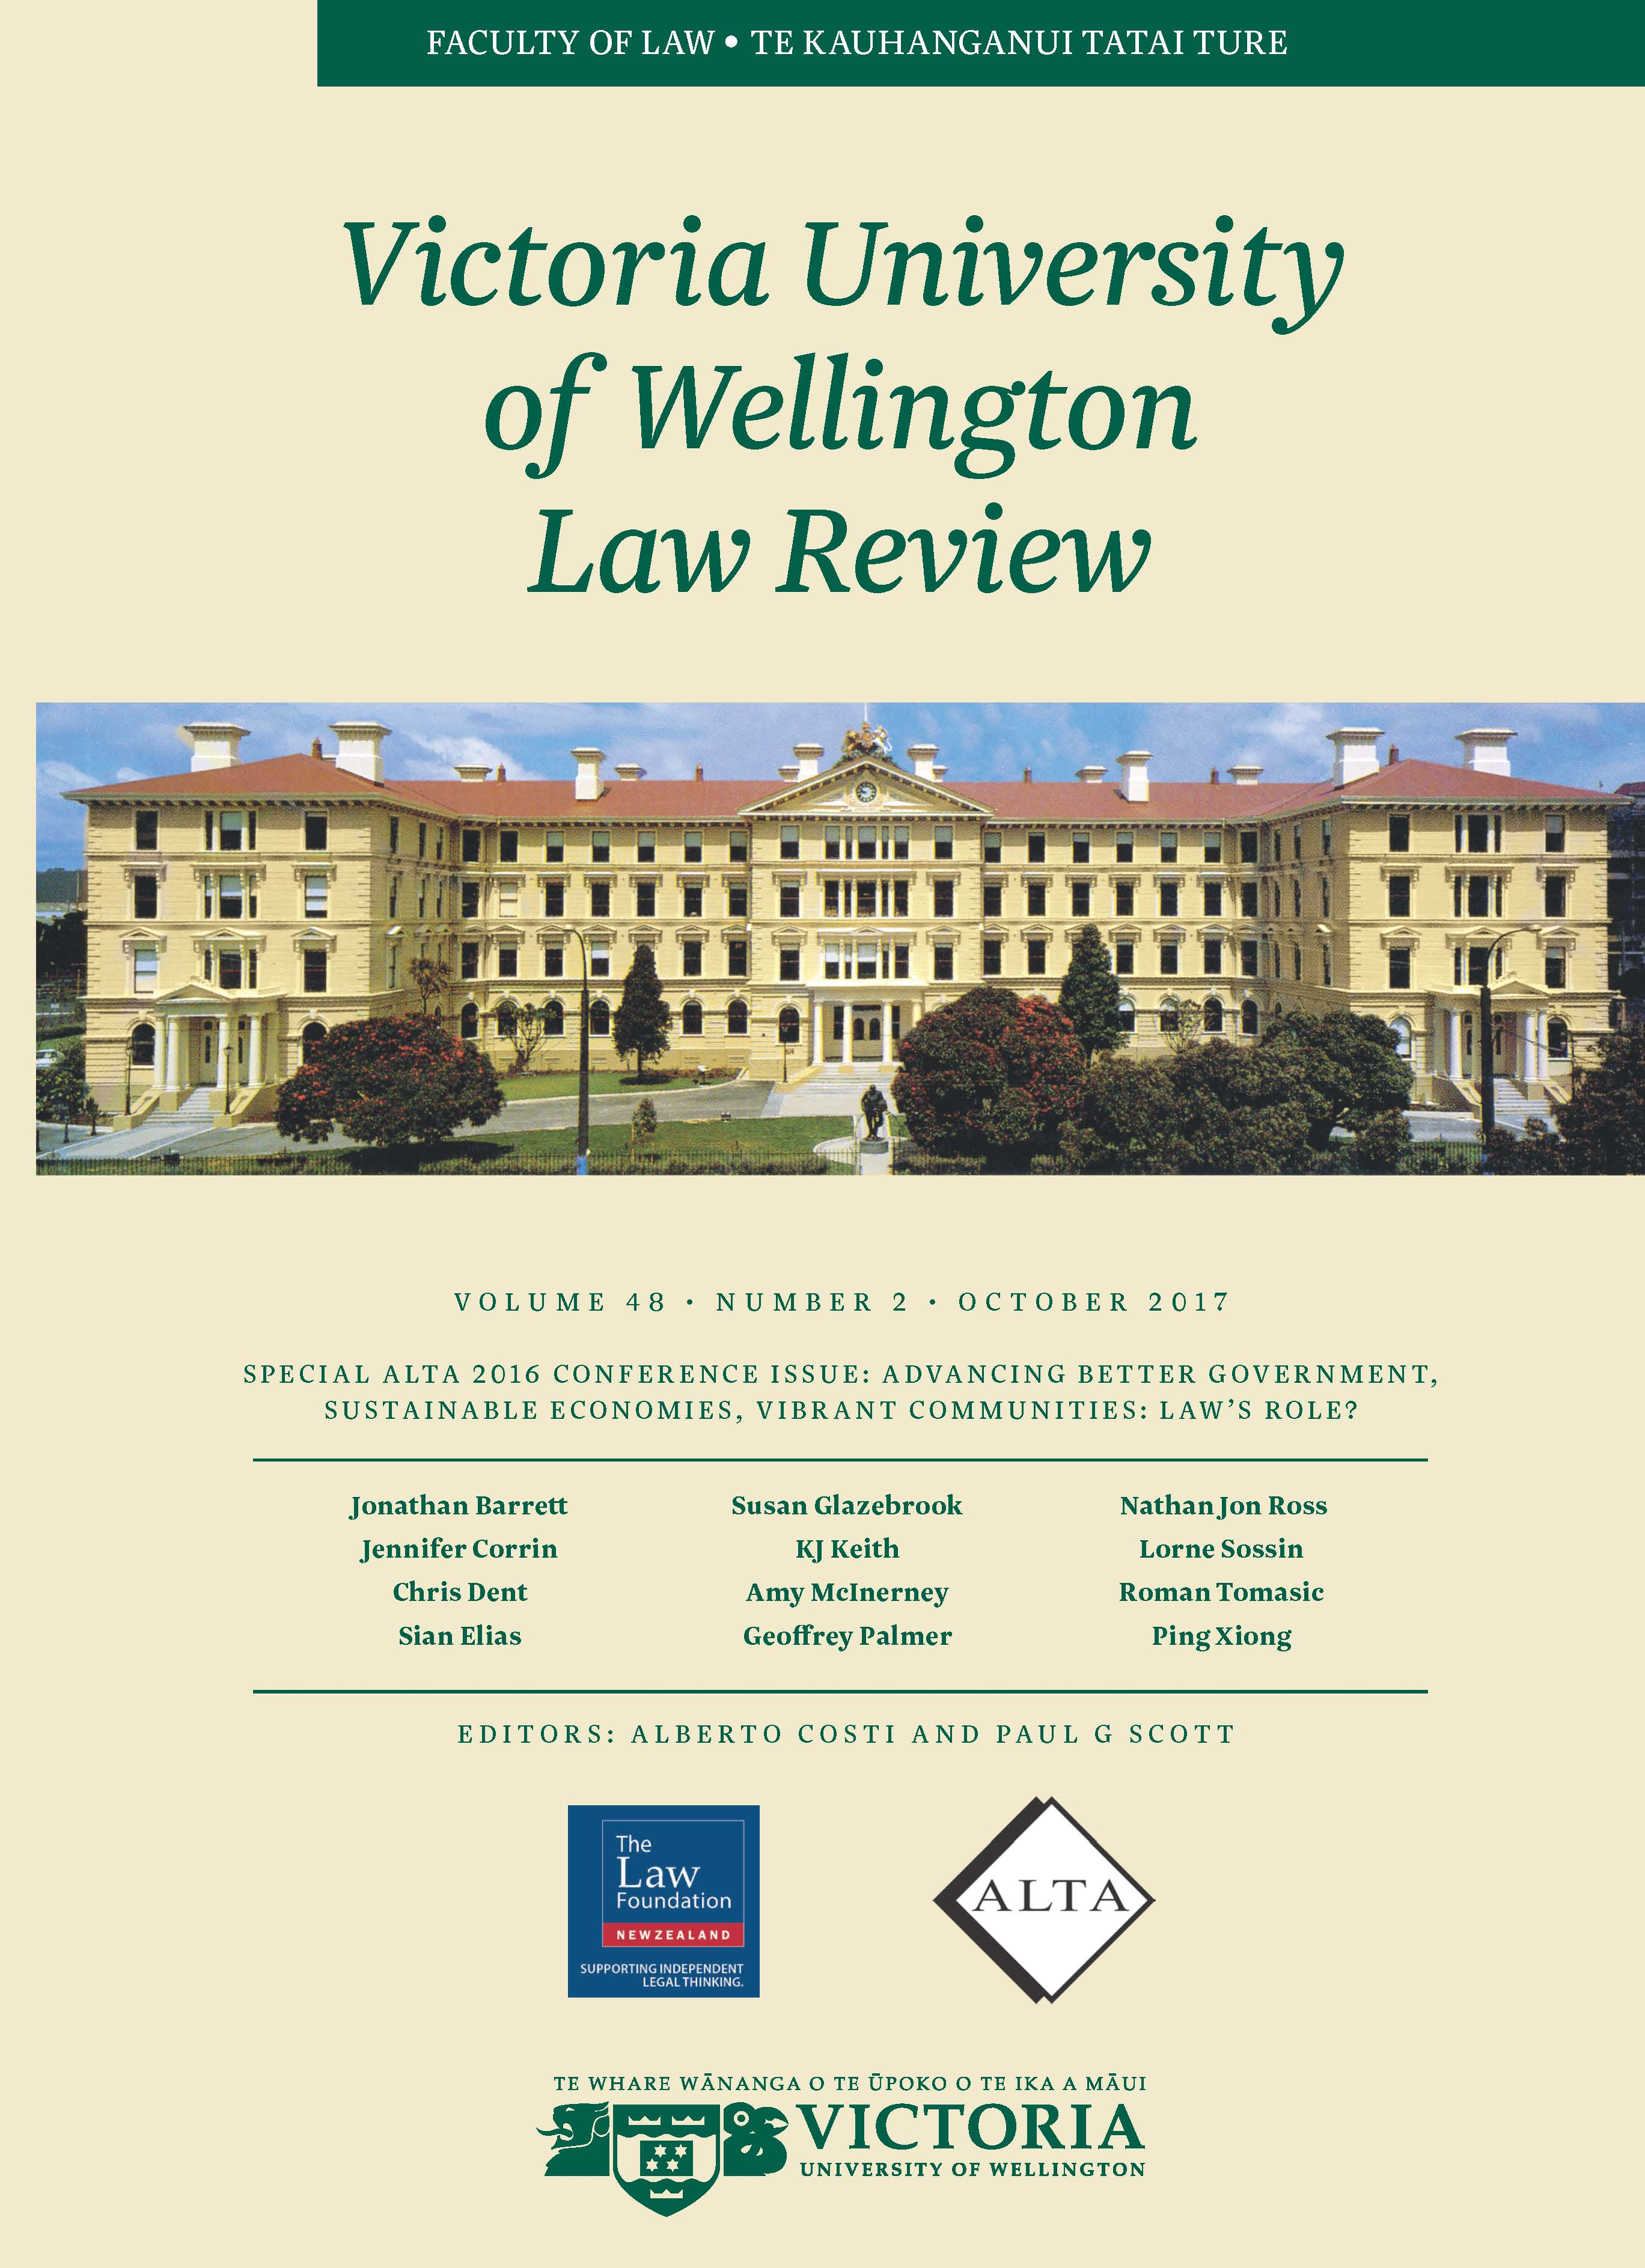 SPECIAL 2016 ALTA CONFERENCE ISSUE: ADVANCING BETTER GOVERNMENT, SUSTAINABLE ECONOMIES, VIBRANT COMMUNITIES: LAW'S ROLE?